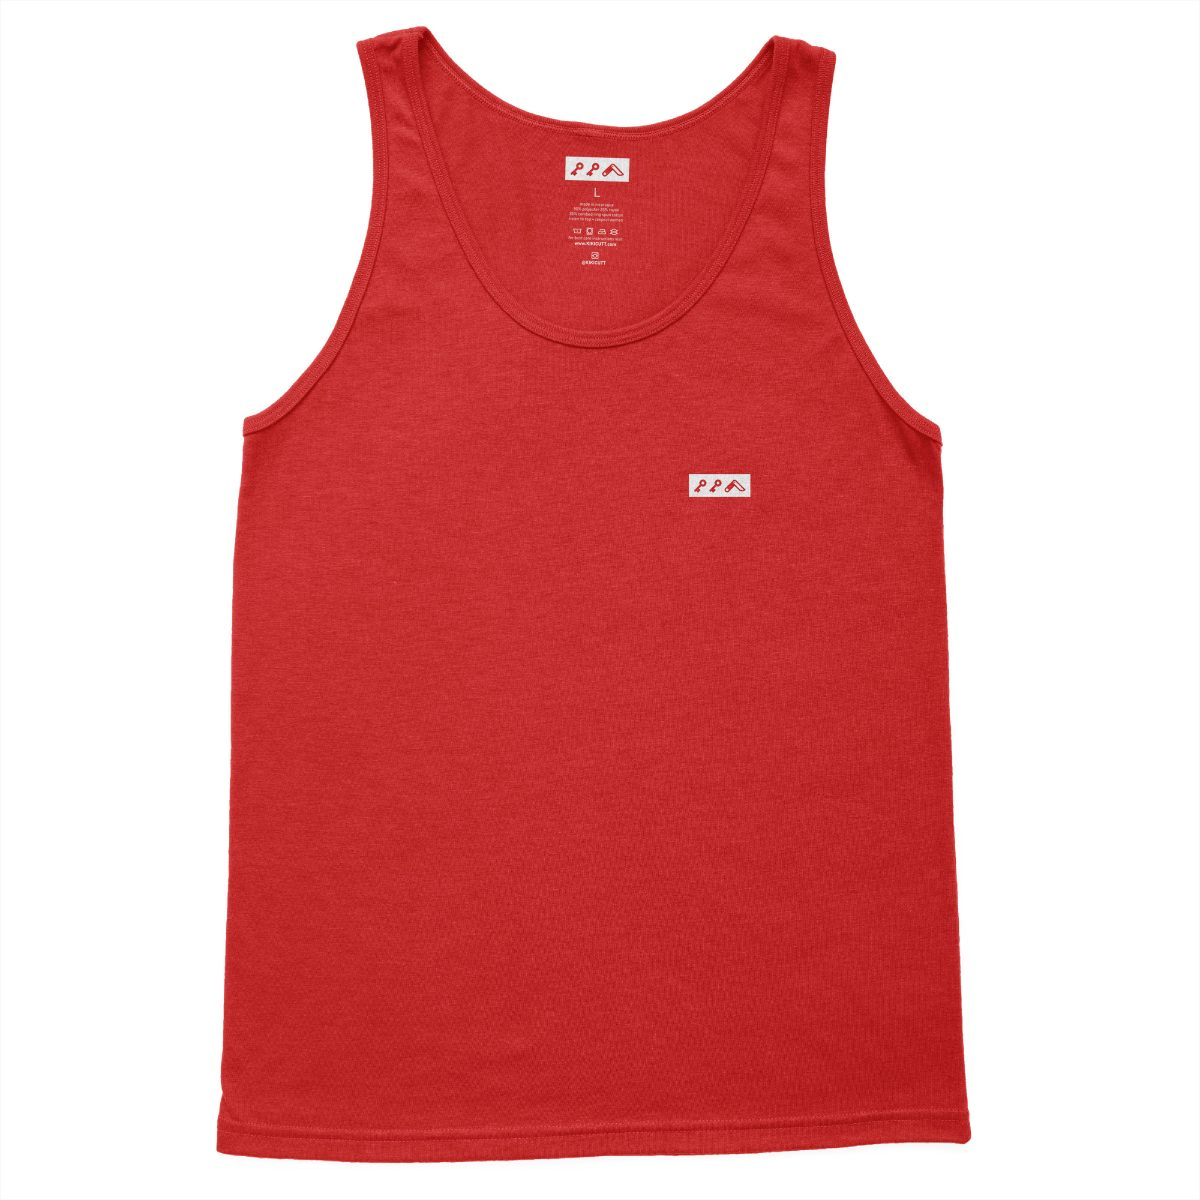 KIKICUTT white icon on a red super soft beach tank top at kikicutt.com